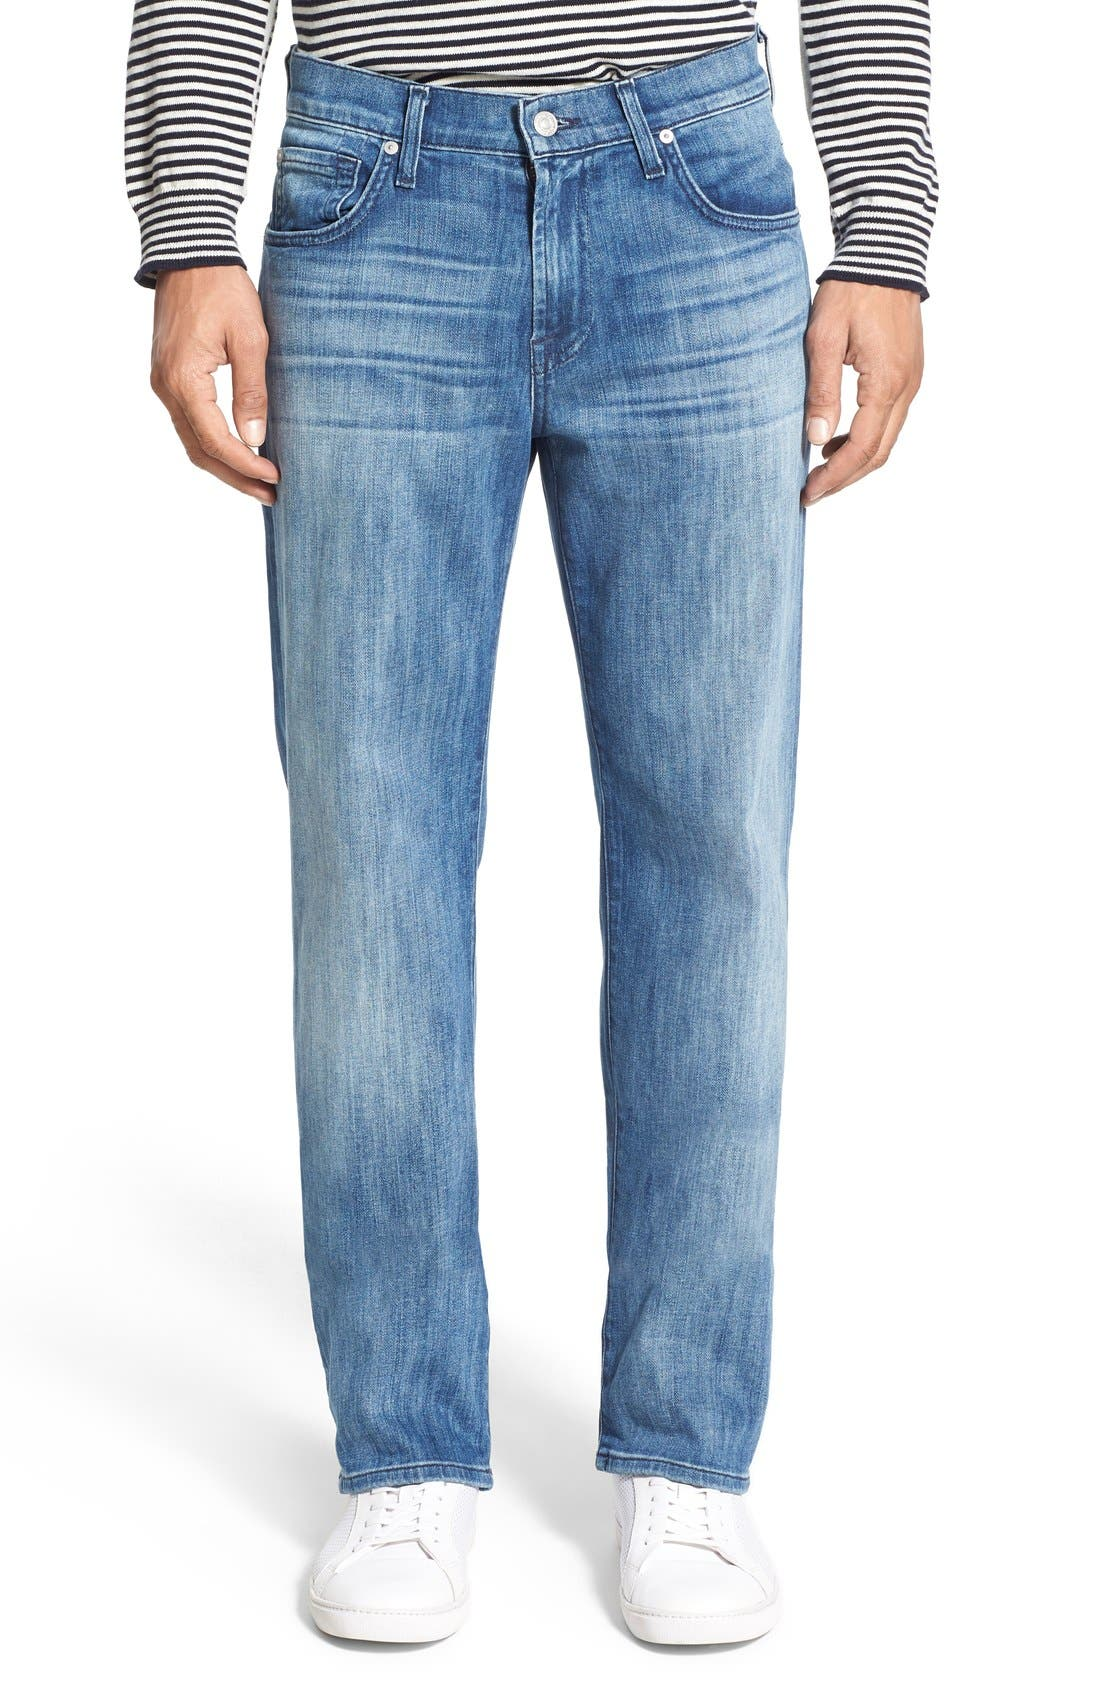 7 FOR ALL MANKIND<SUP>®</SUP>, Luxe Performance - Austyn Relaxed Straight Leg Jeans, Main thumbnail 1, color, NAKKITTA BLUE